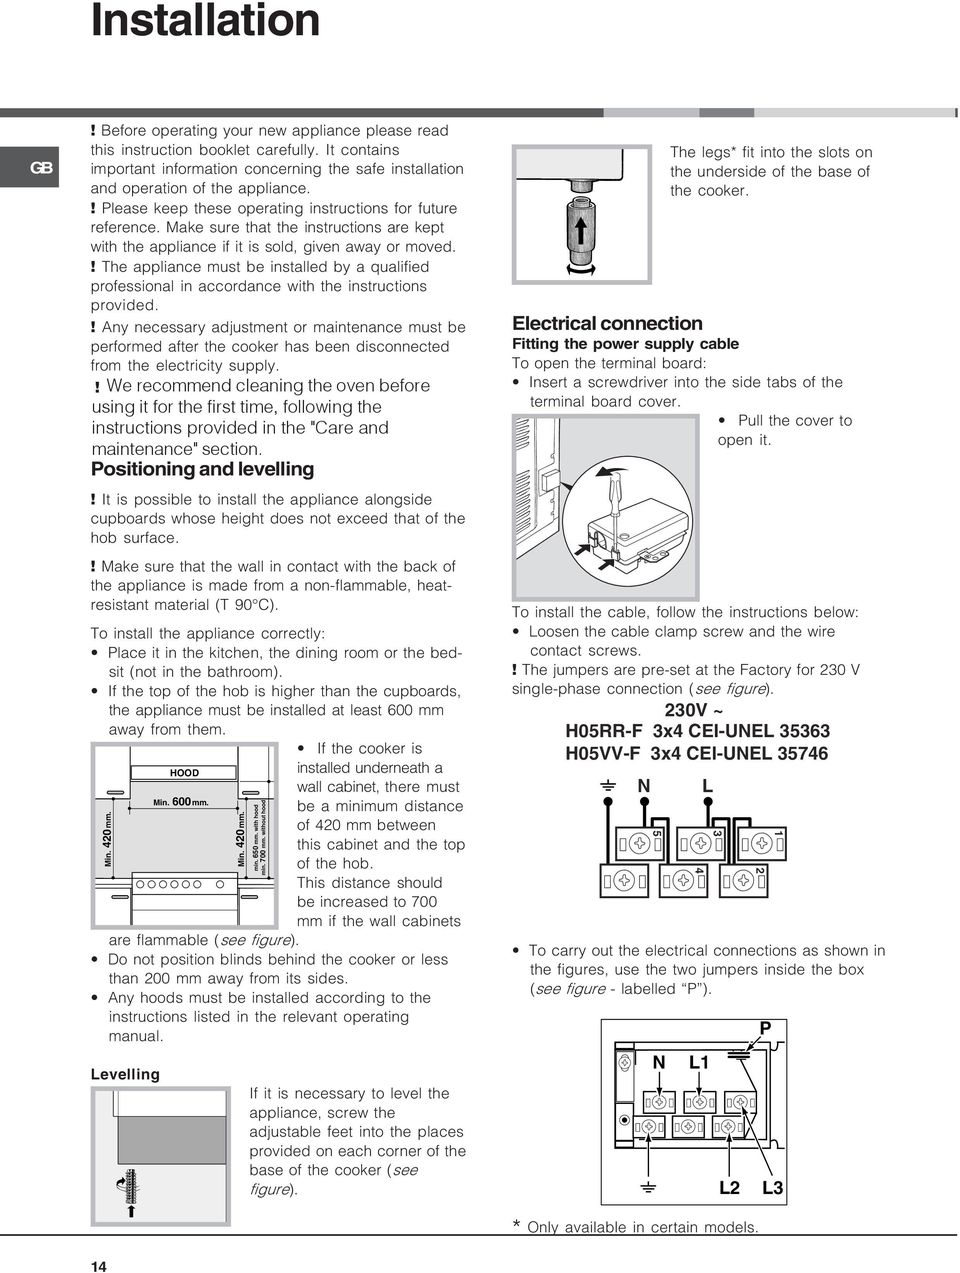 ! The appliance must be installed by a qualified professional in accordance with the instructions provided.